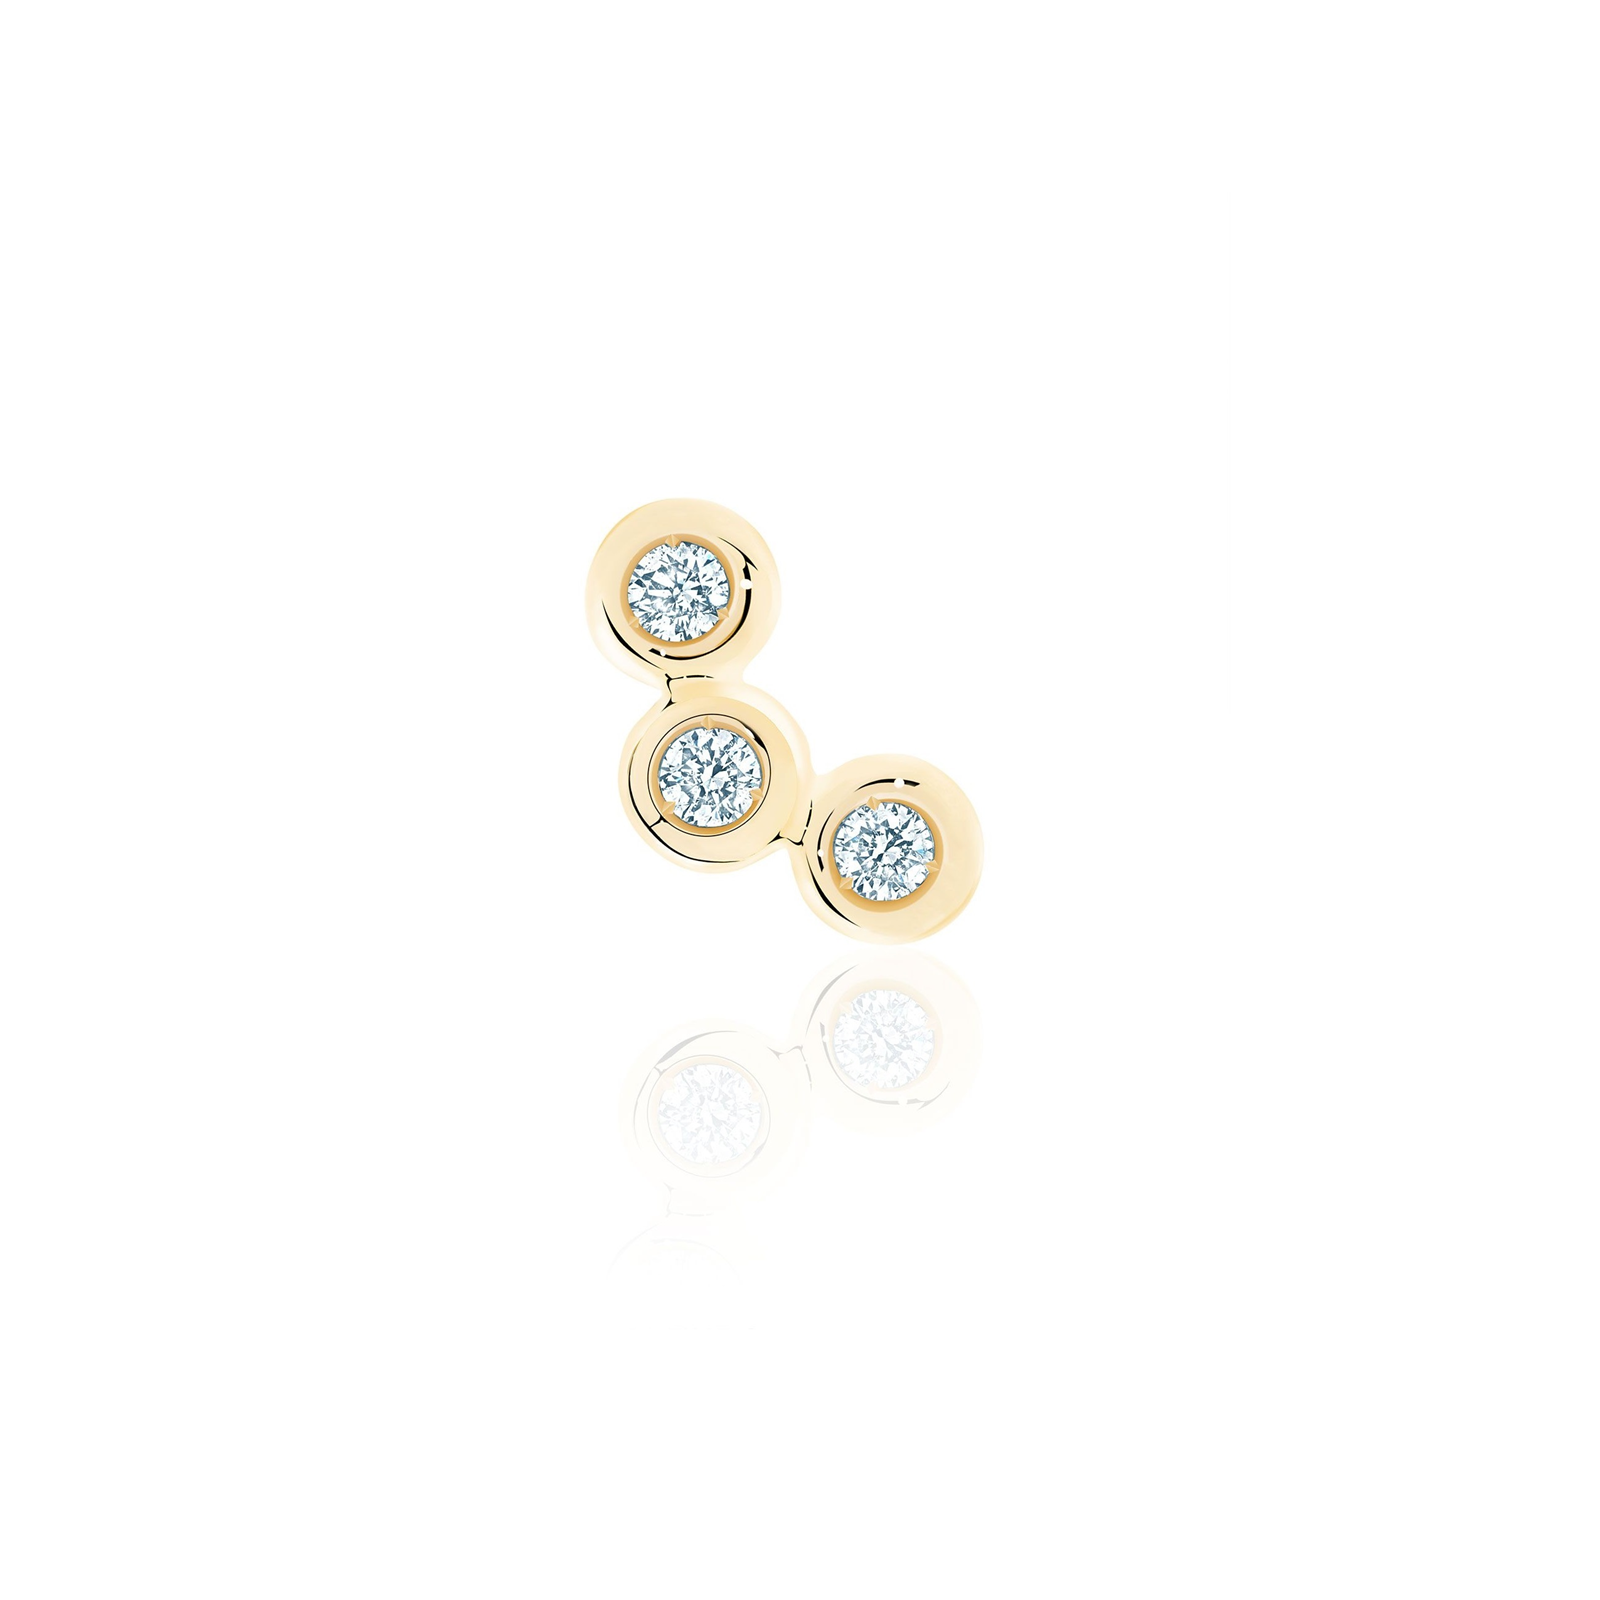 Birks Iconic Yellow Gold and Diamond Splash Single Earring